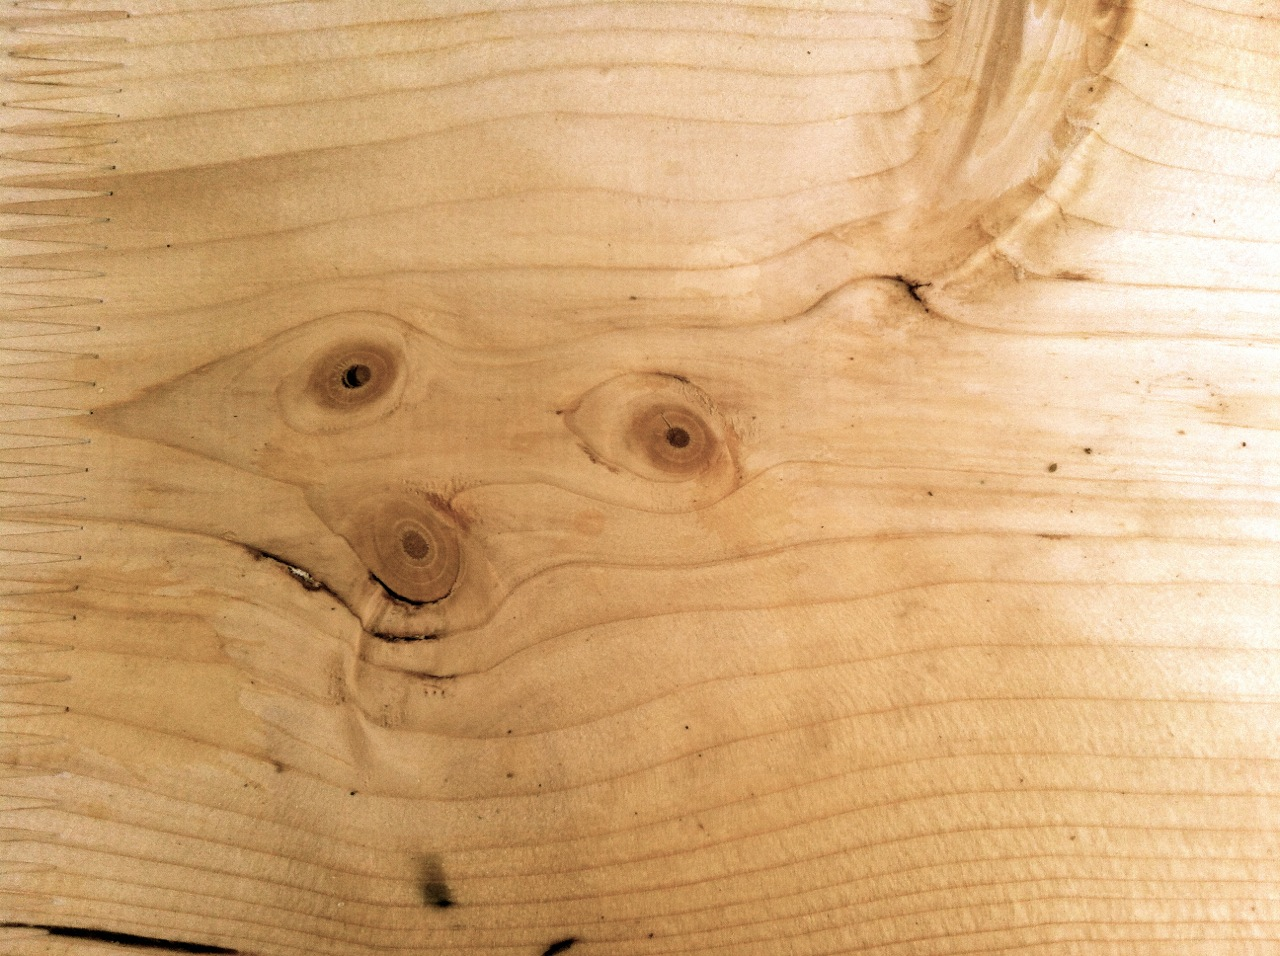 The faces of trees